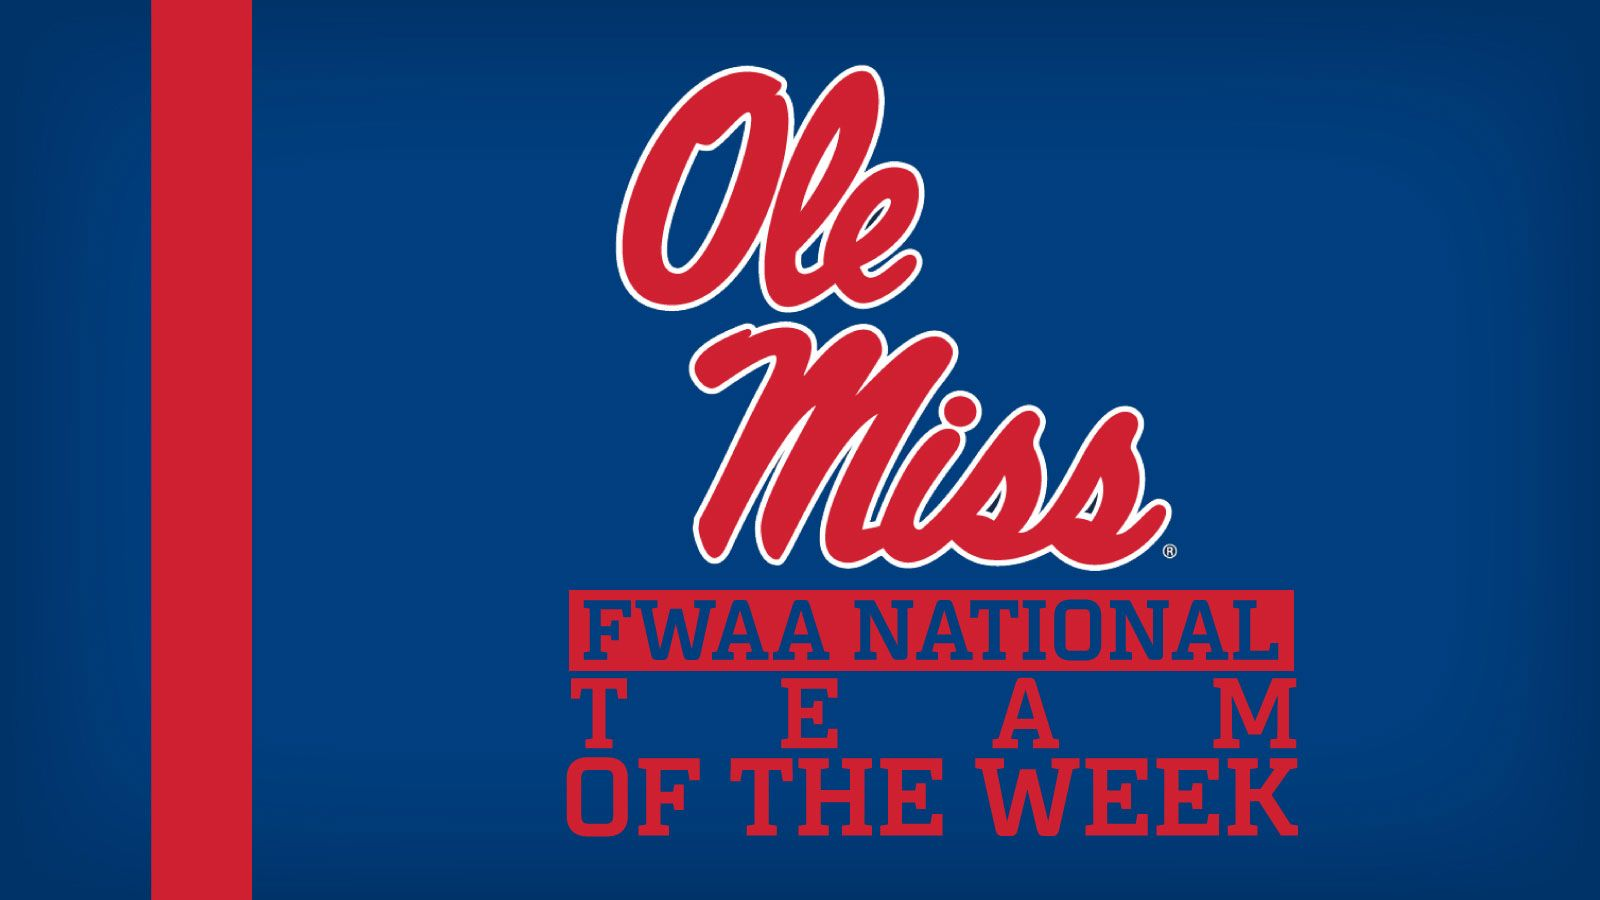 Ole Miss Named National Team Of The Week